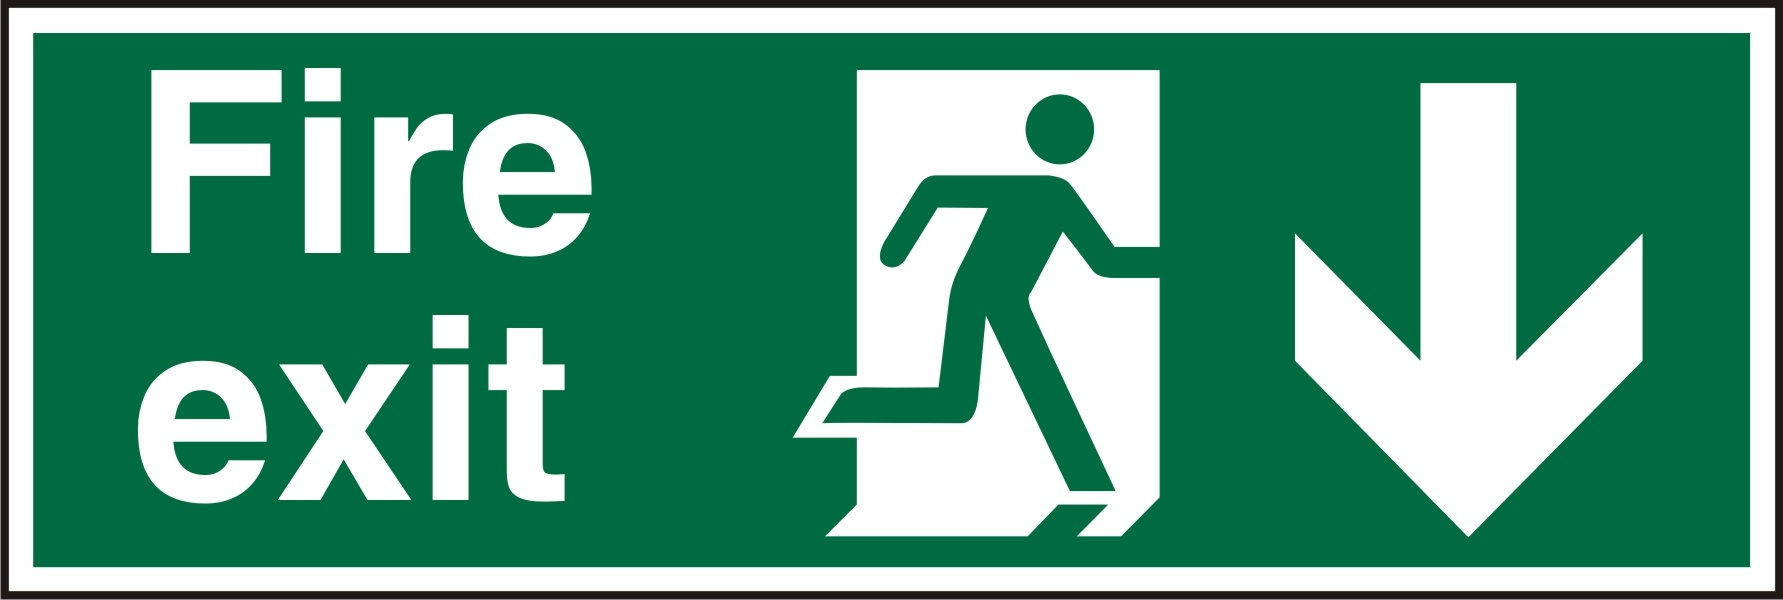 Exit Signs Pictures   Free Download Best Exit Signs Pictures On - Free Printable Exit Signs With Arrow